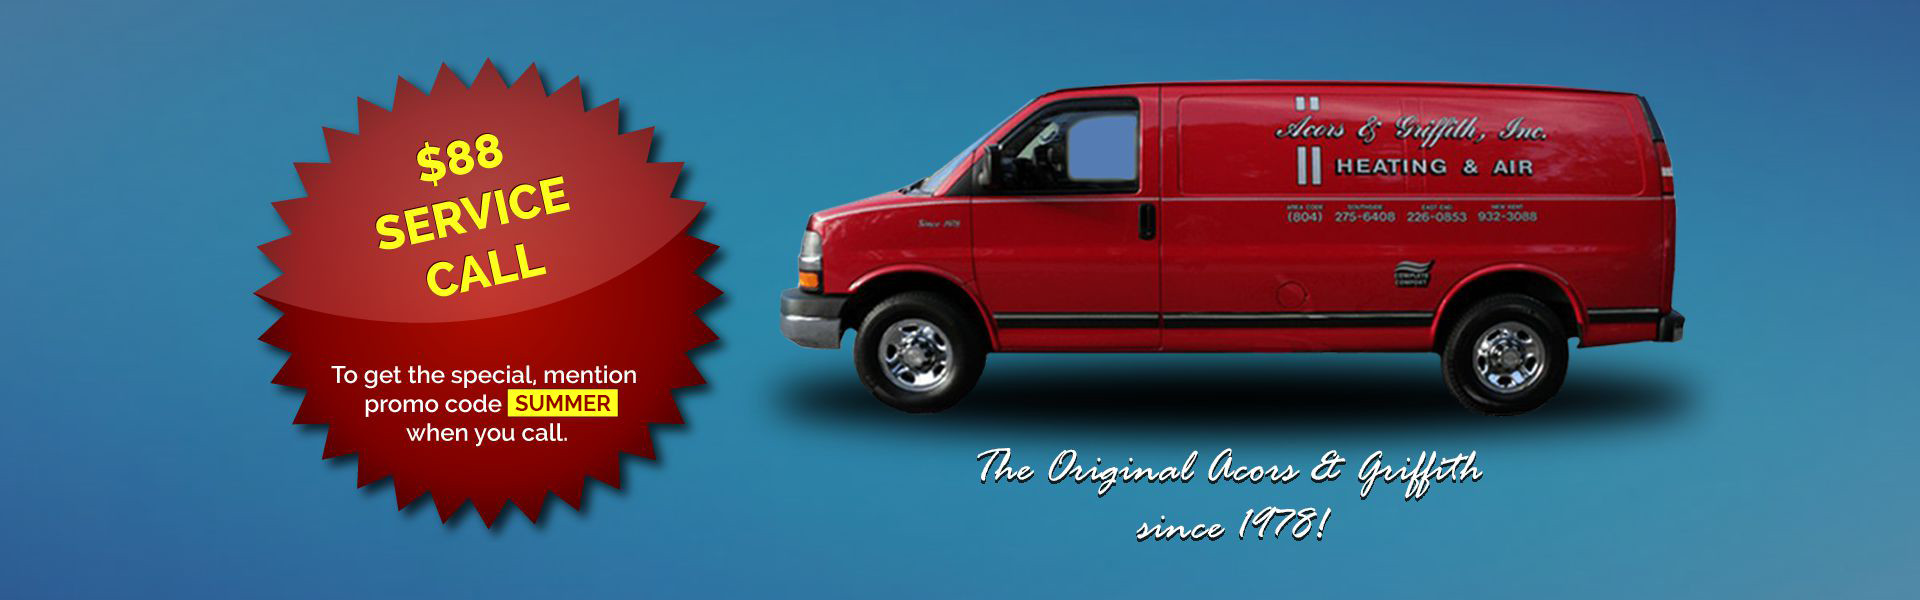 Heating and Air Conditioning Service Van